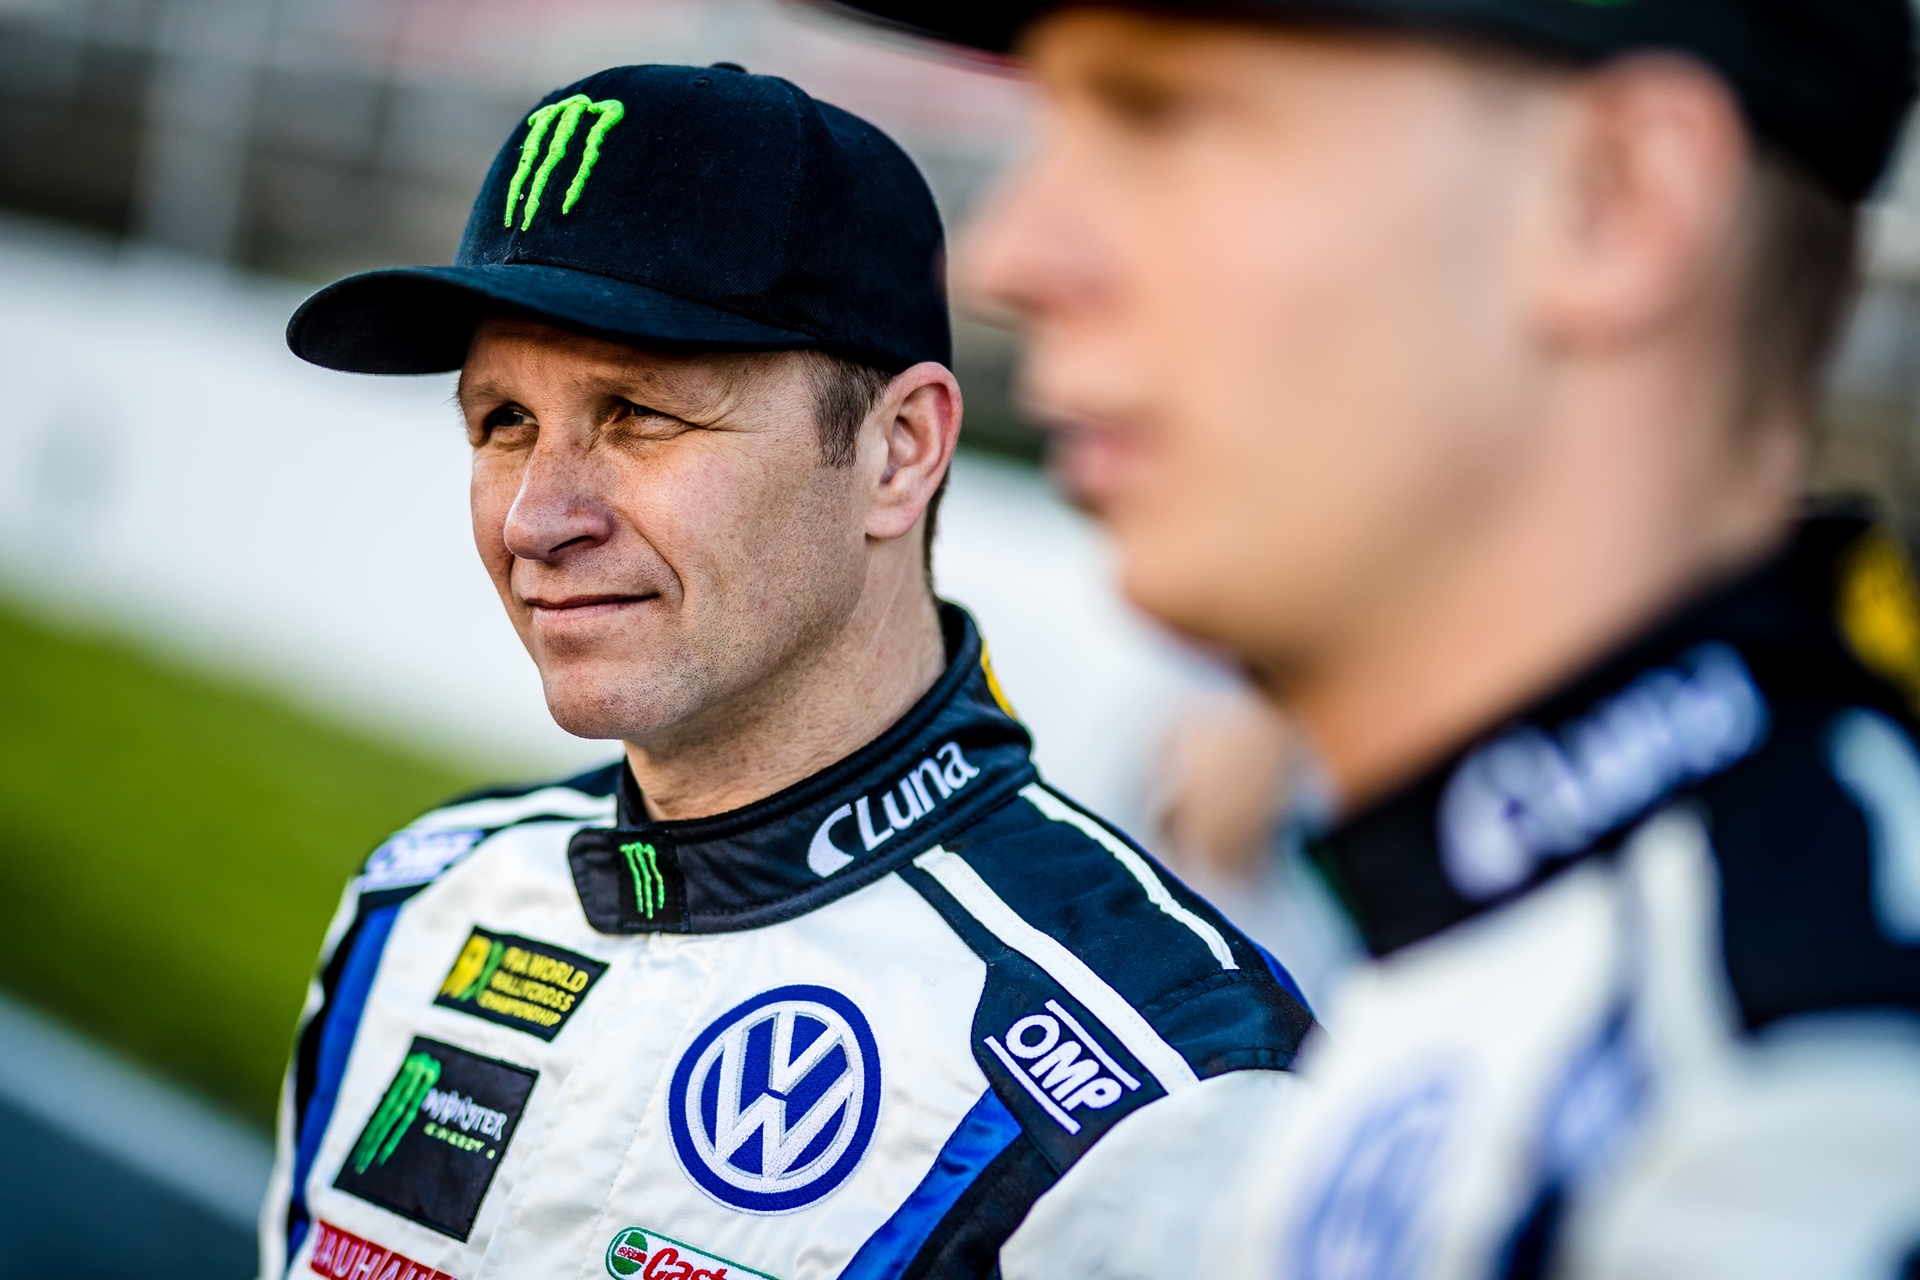 PSRX_Volkswagen_World_RX_Team_Sweden_0001